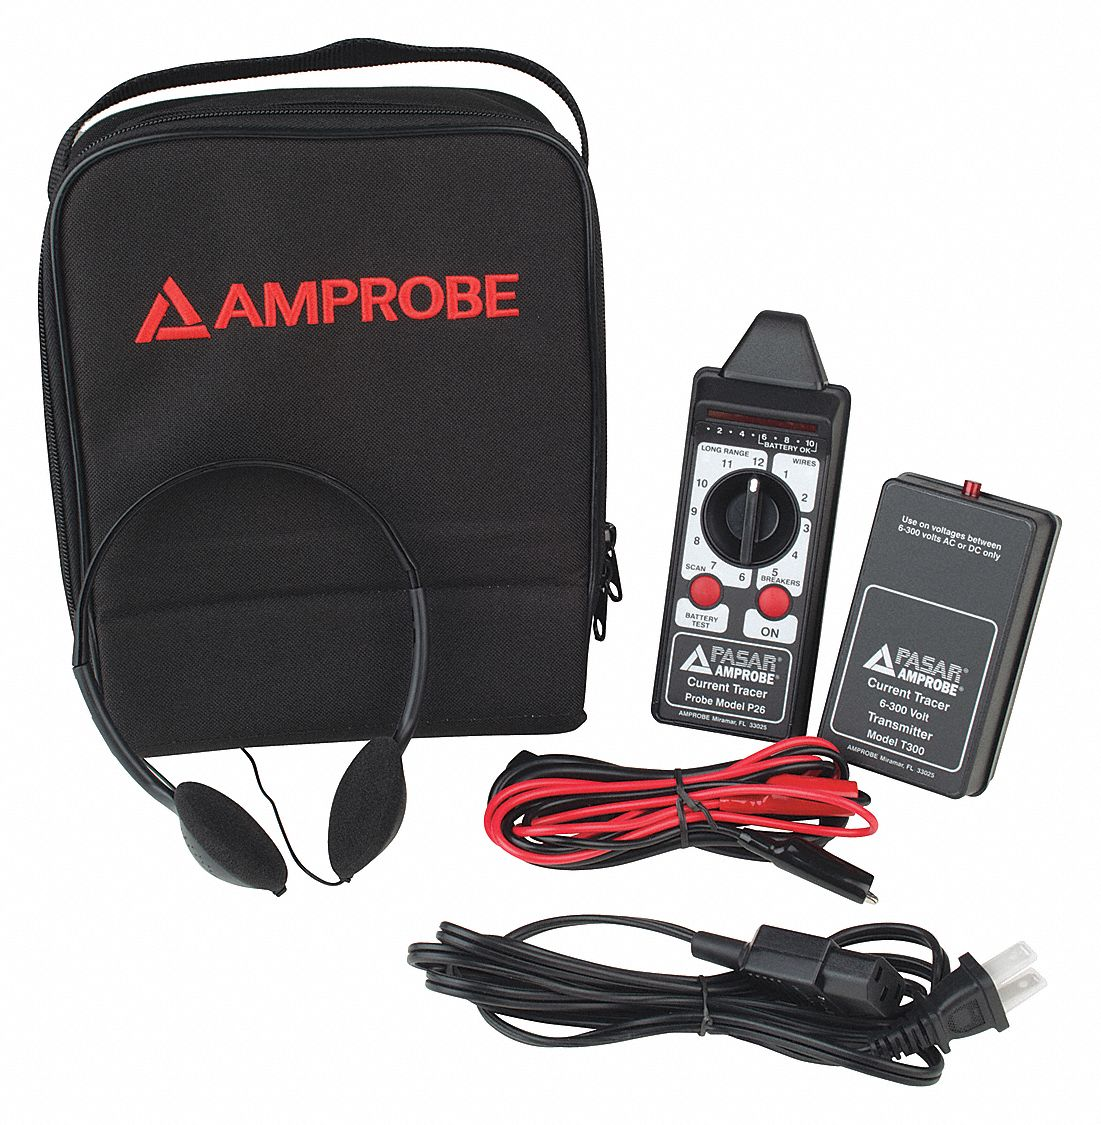 Amprobe Wire Tracer 9 To 300vac Dc 30pj84 Ct 326 C Grainger Featured Electrical Circuit Tracers And Testers At Test Equipment